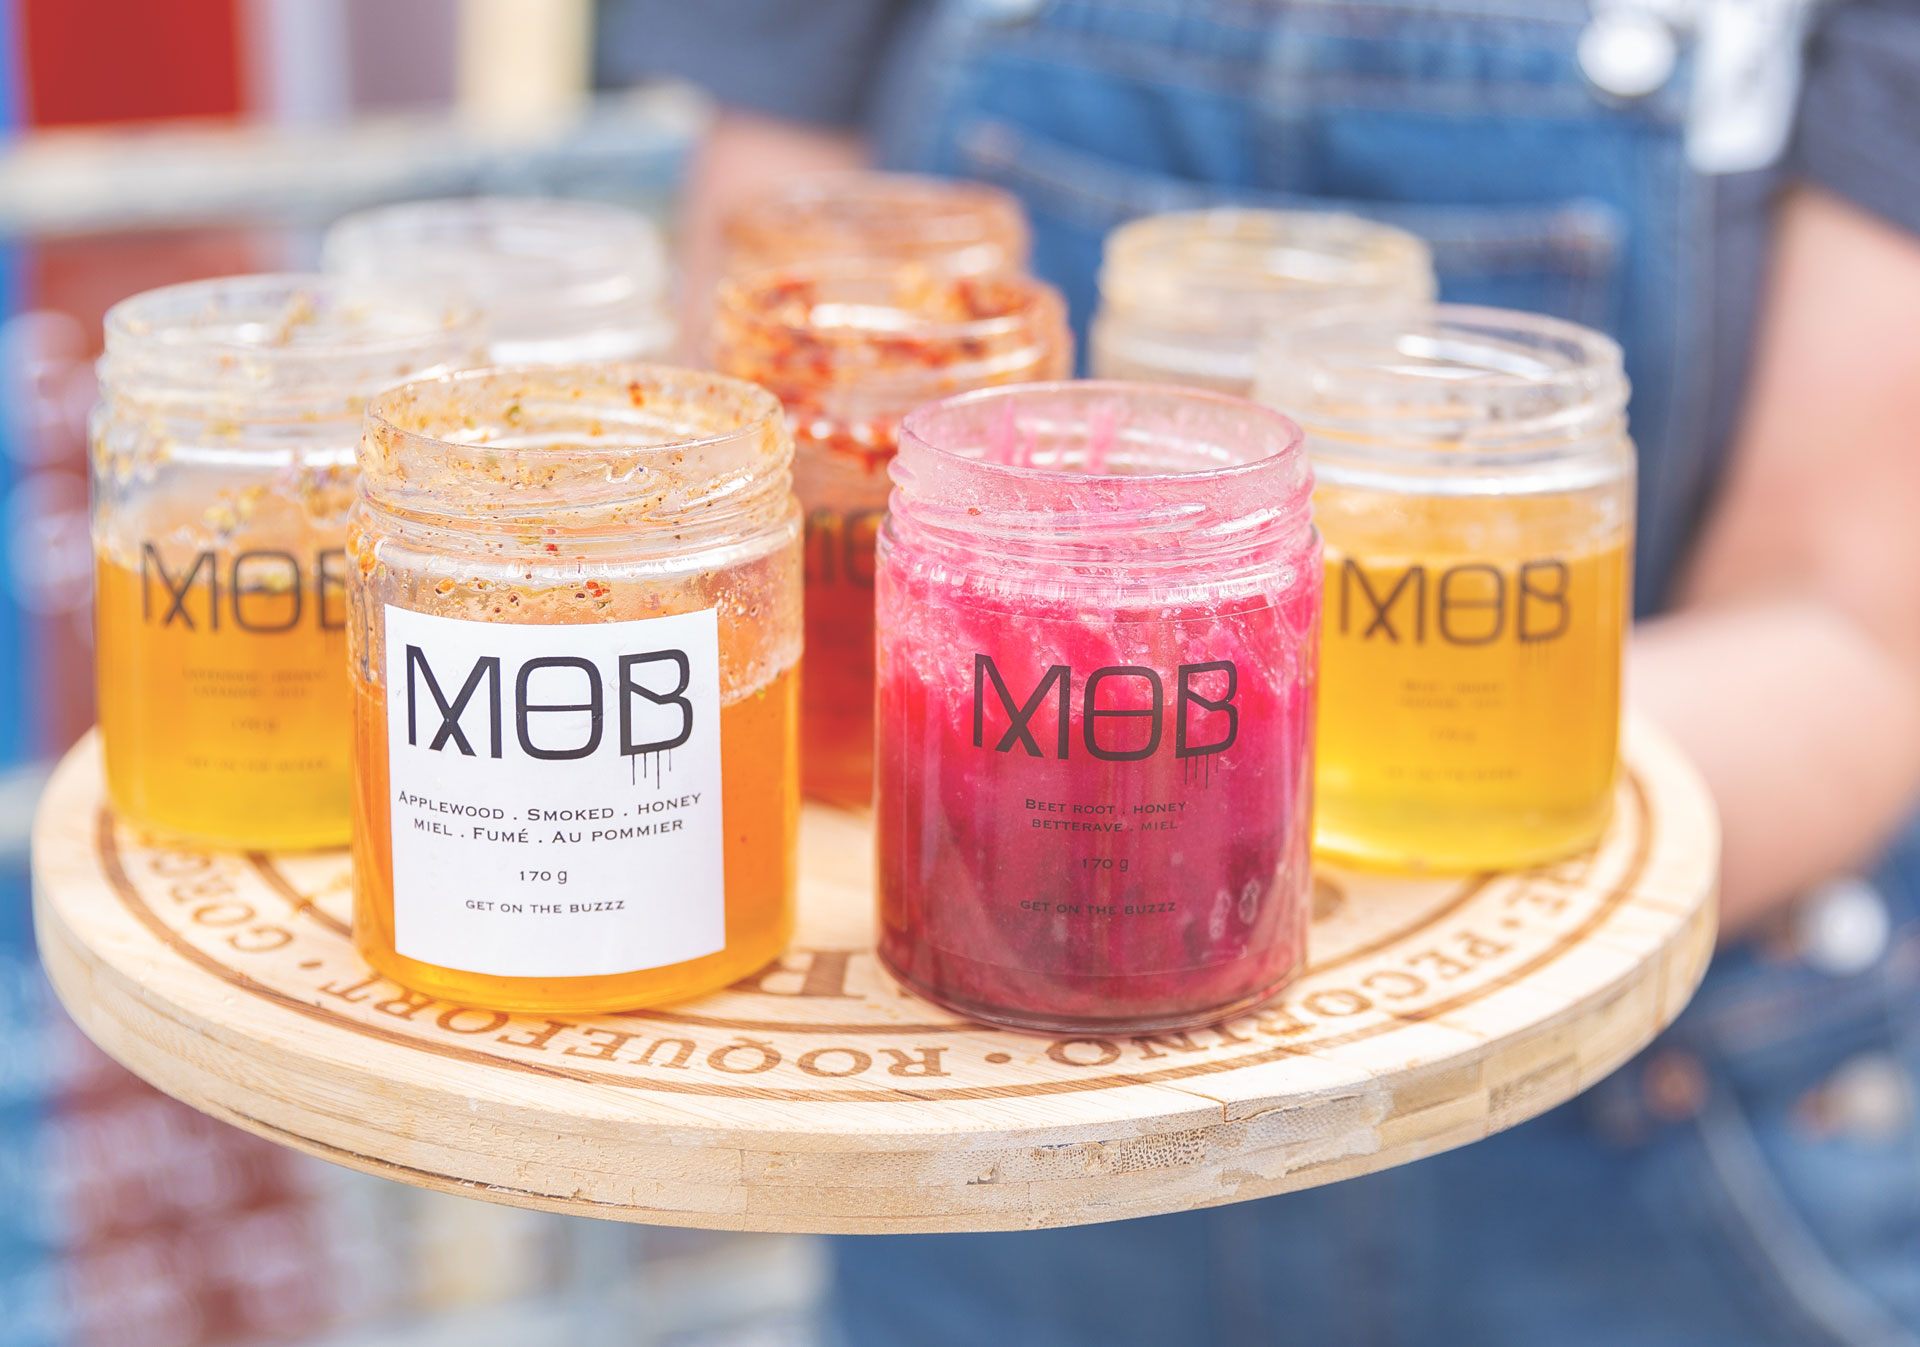 MOB raw, local honey blends